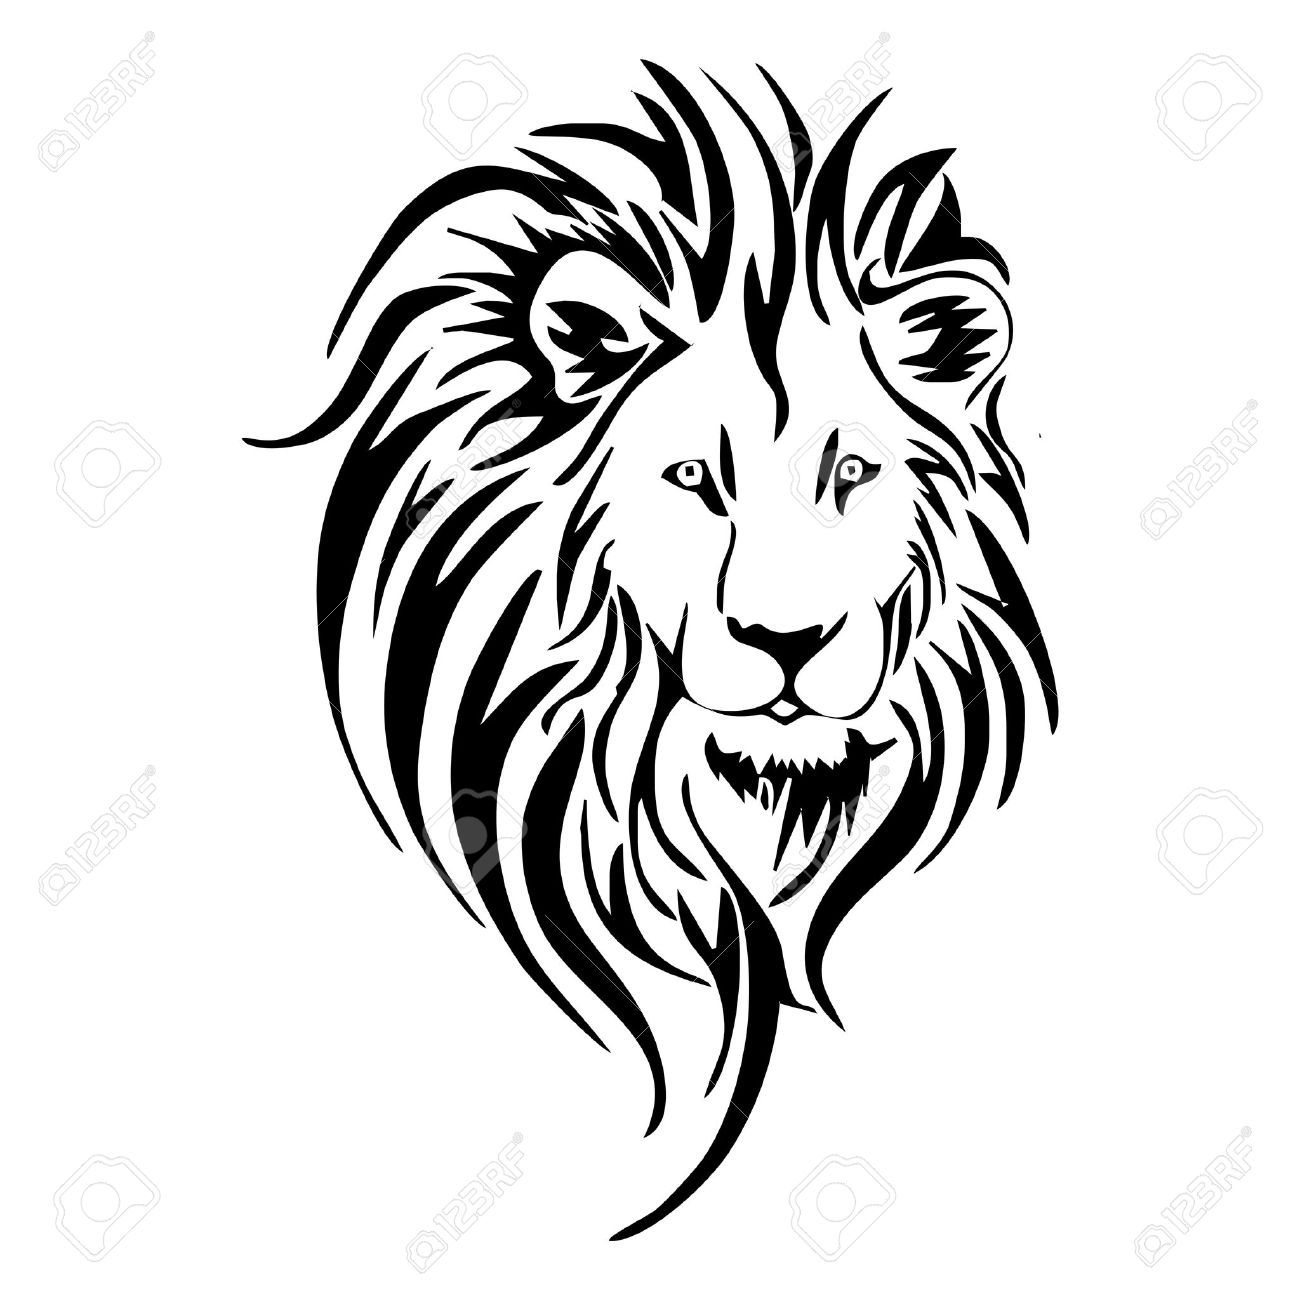 medium resolution of lion head tattoo royalty free cliparts vectors and stock